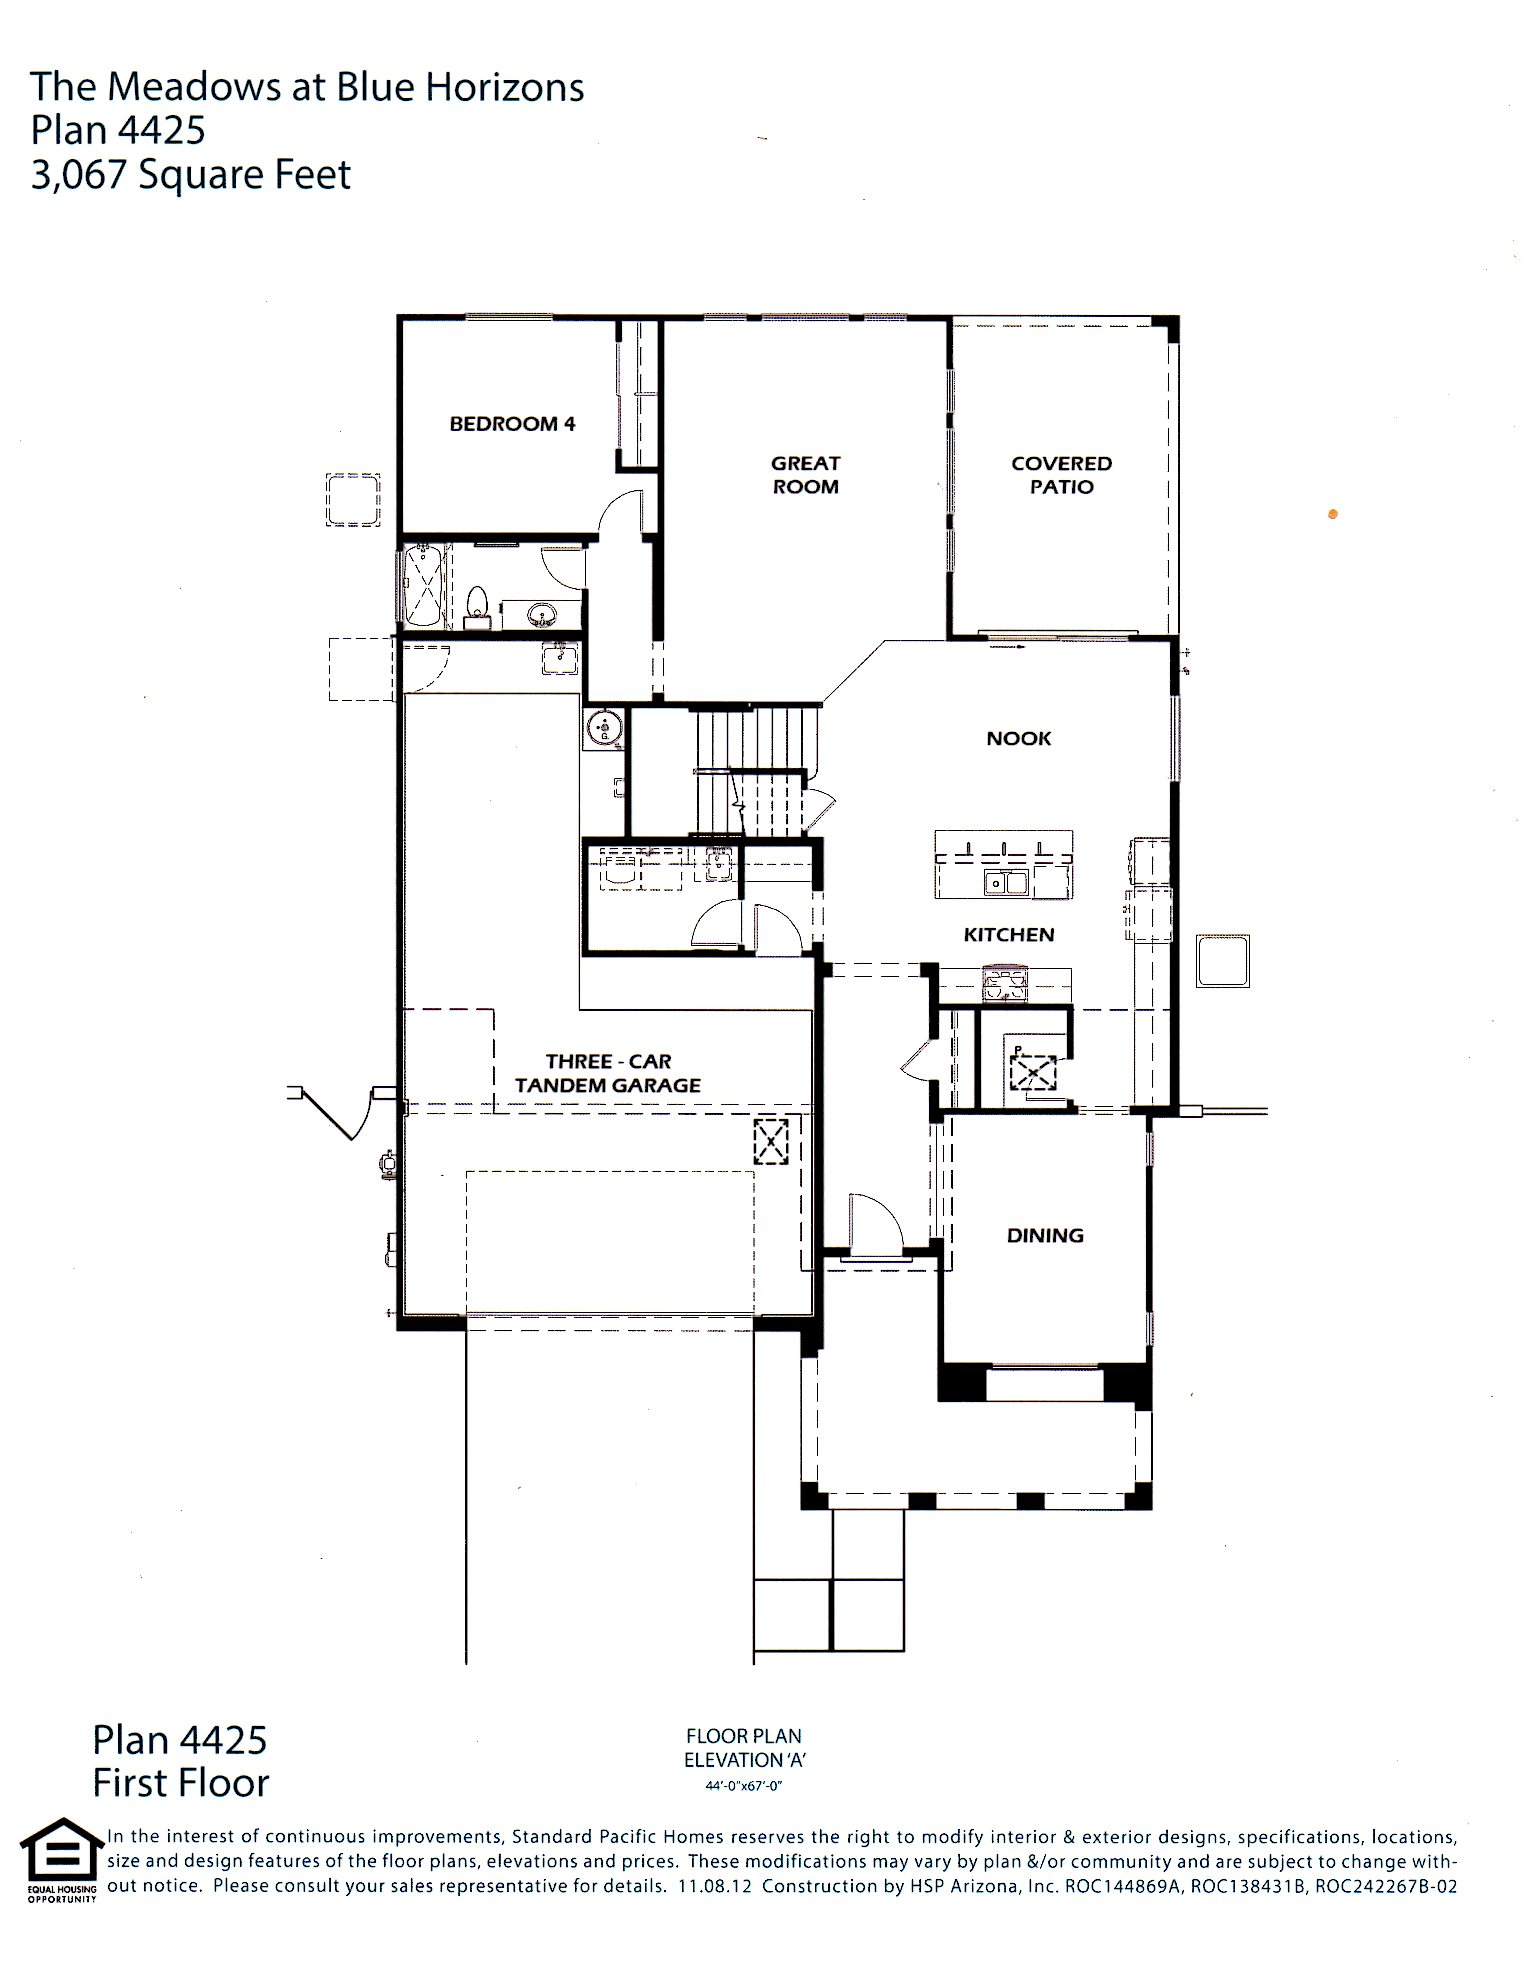 Standard pacific homes floor plans for Standard house plans